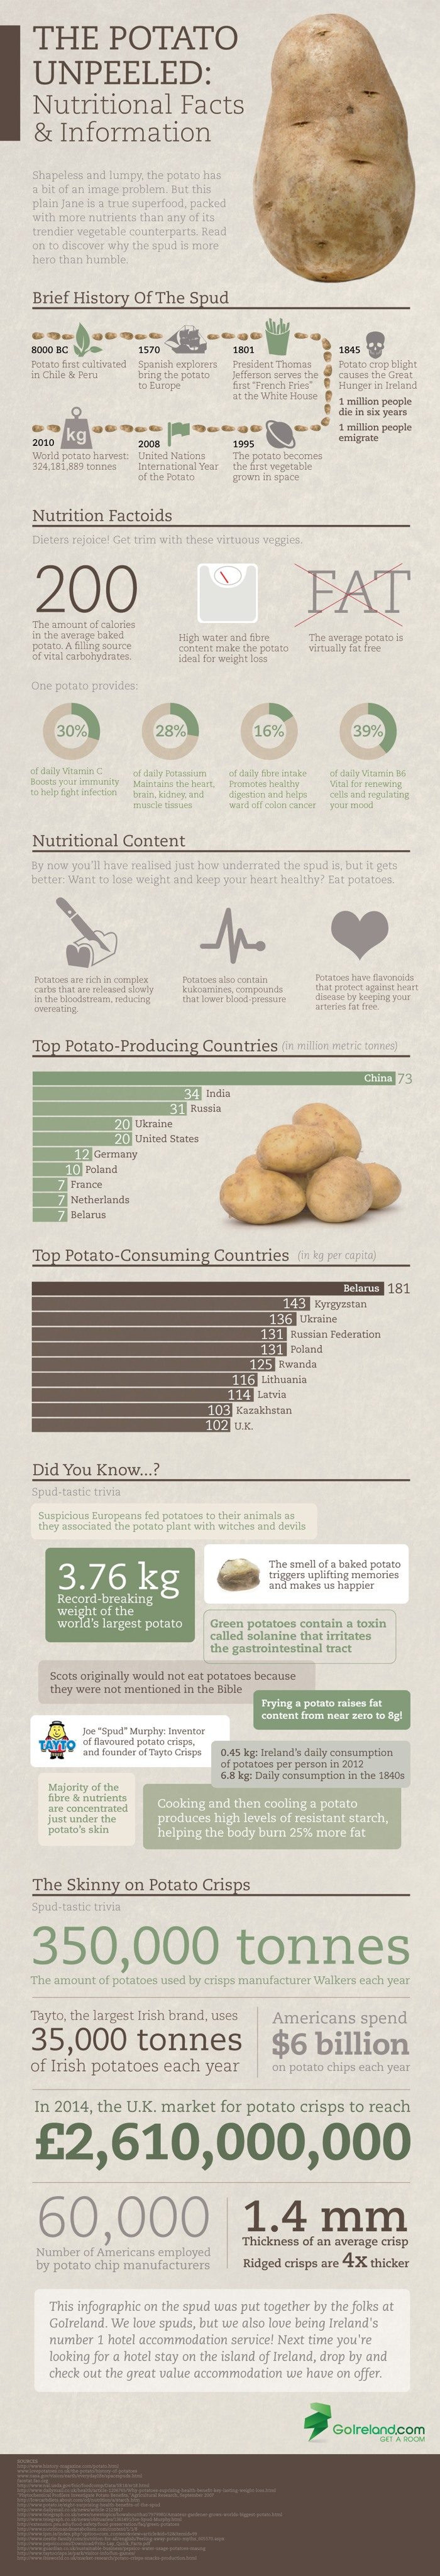 Potato Nutrition Information  The Potato Unpeeled Nutritional Facts & Information